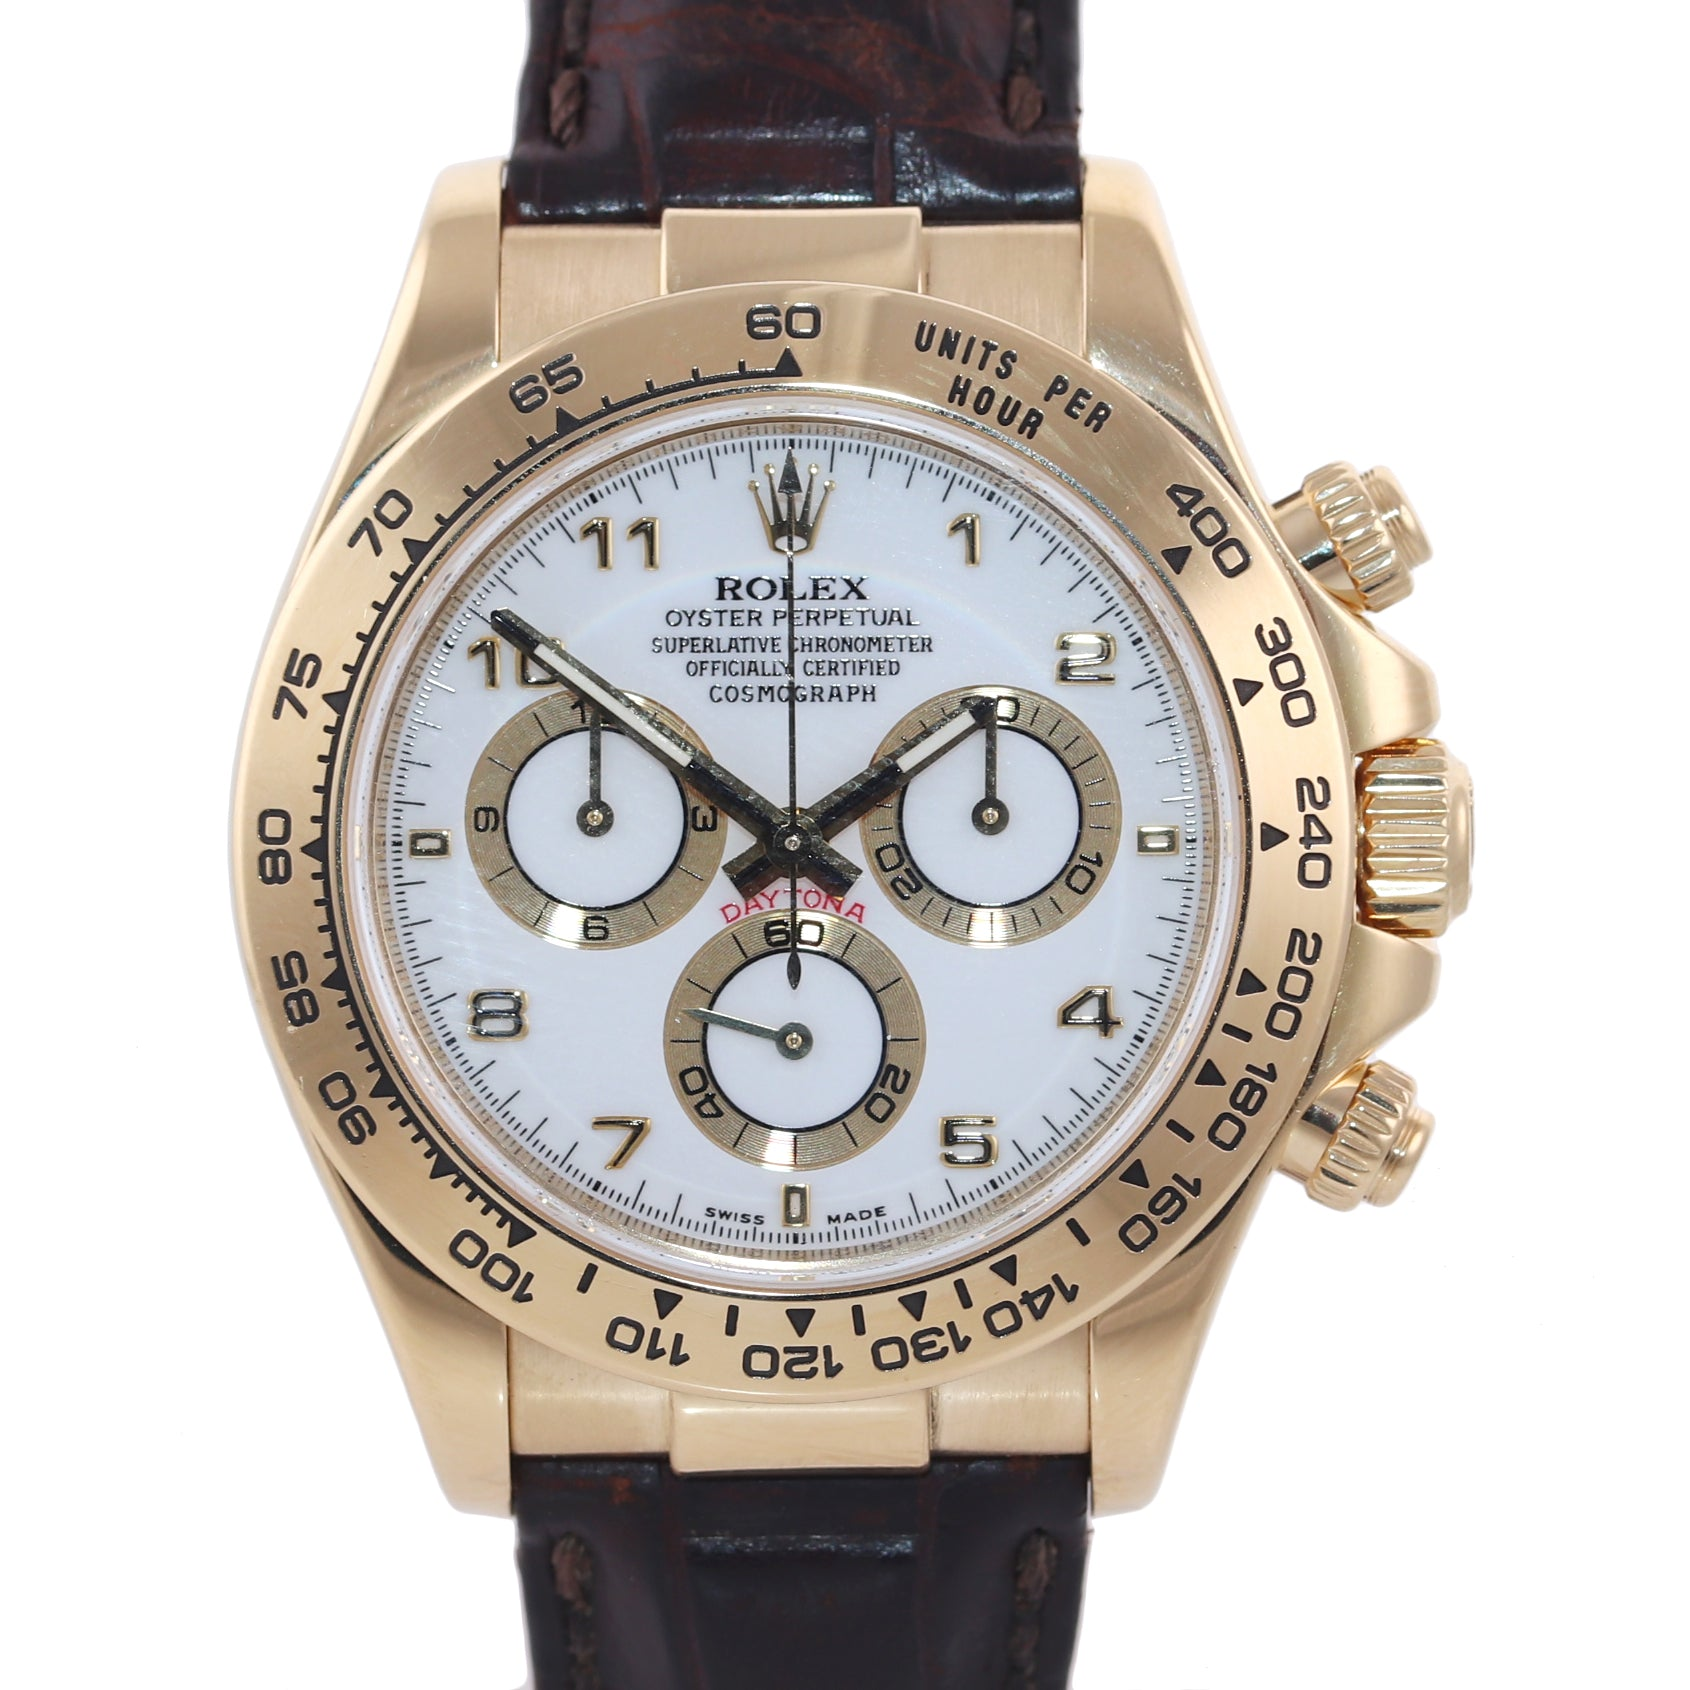 2010 PAPERS Rolex Daytona White Dial 116518 18k Yellow Gold Leather Watch Box